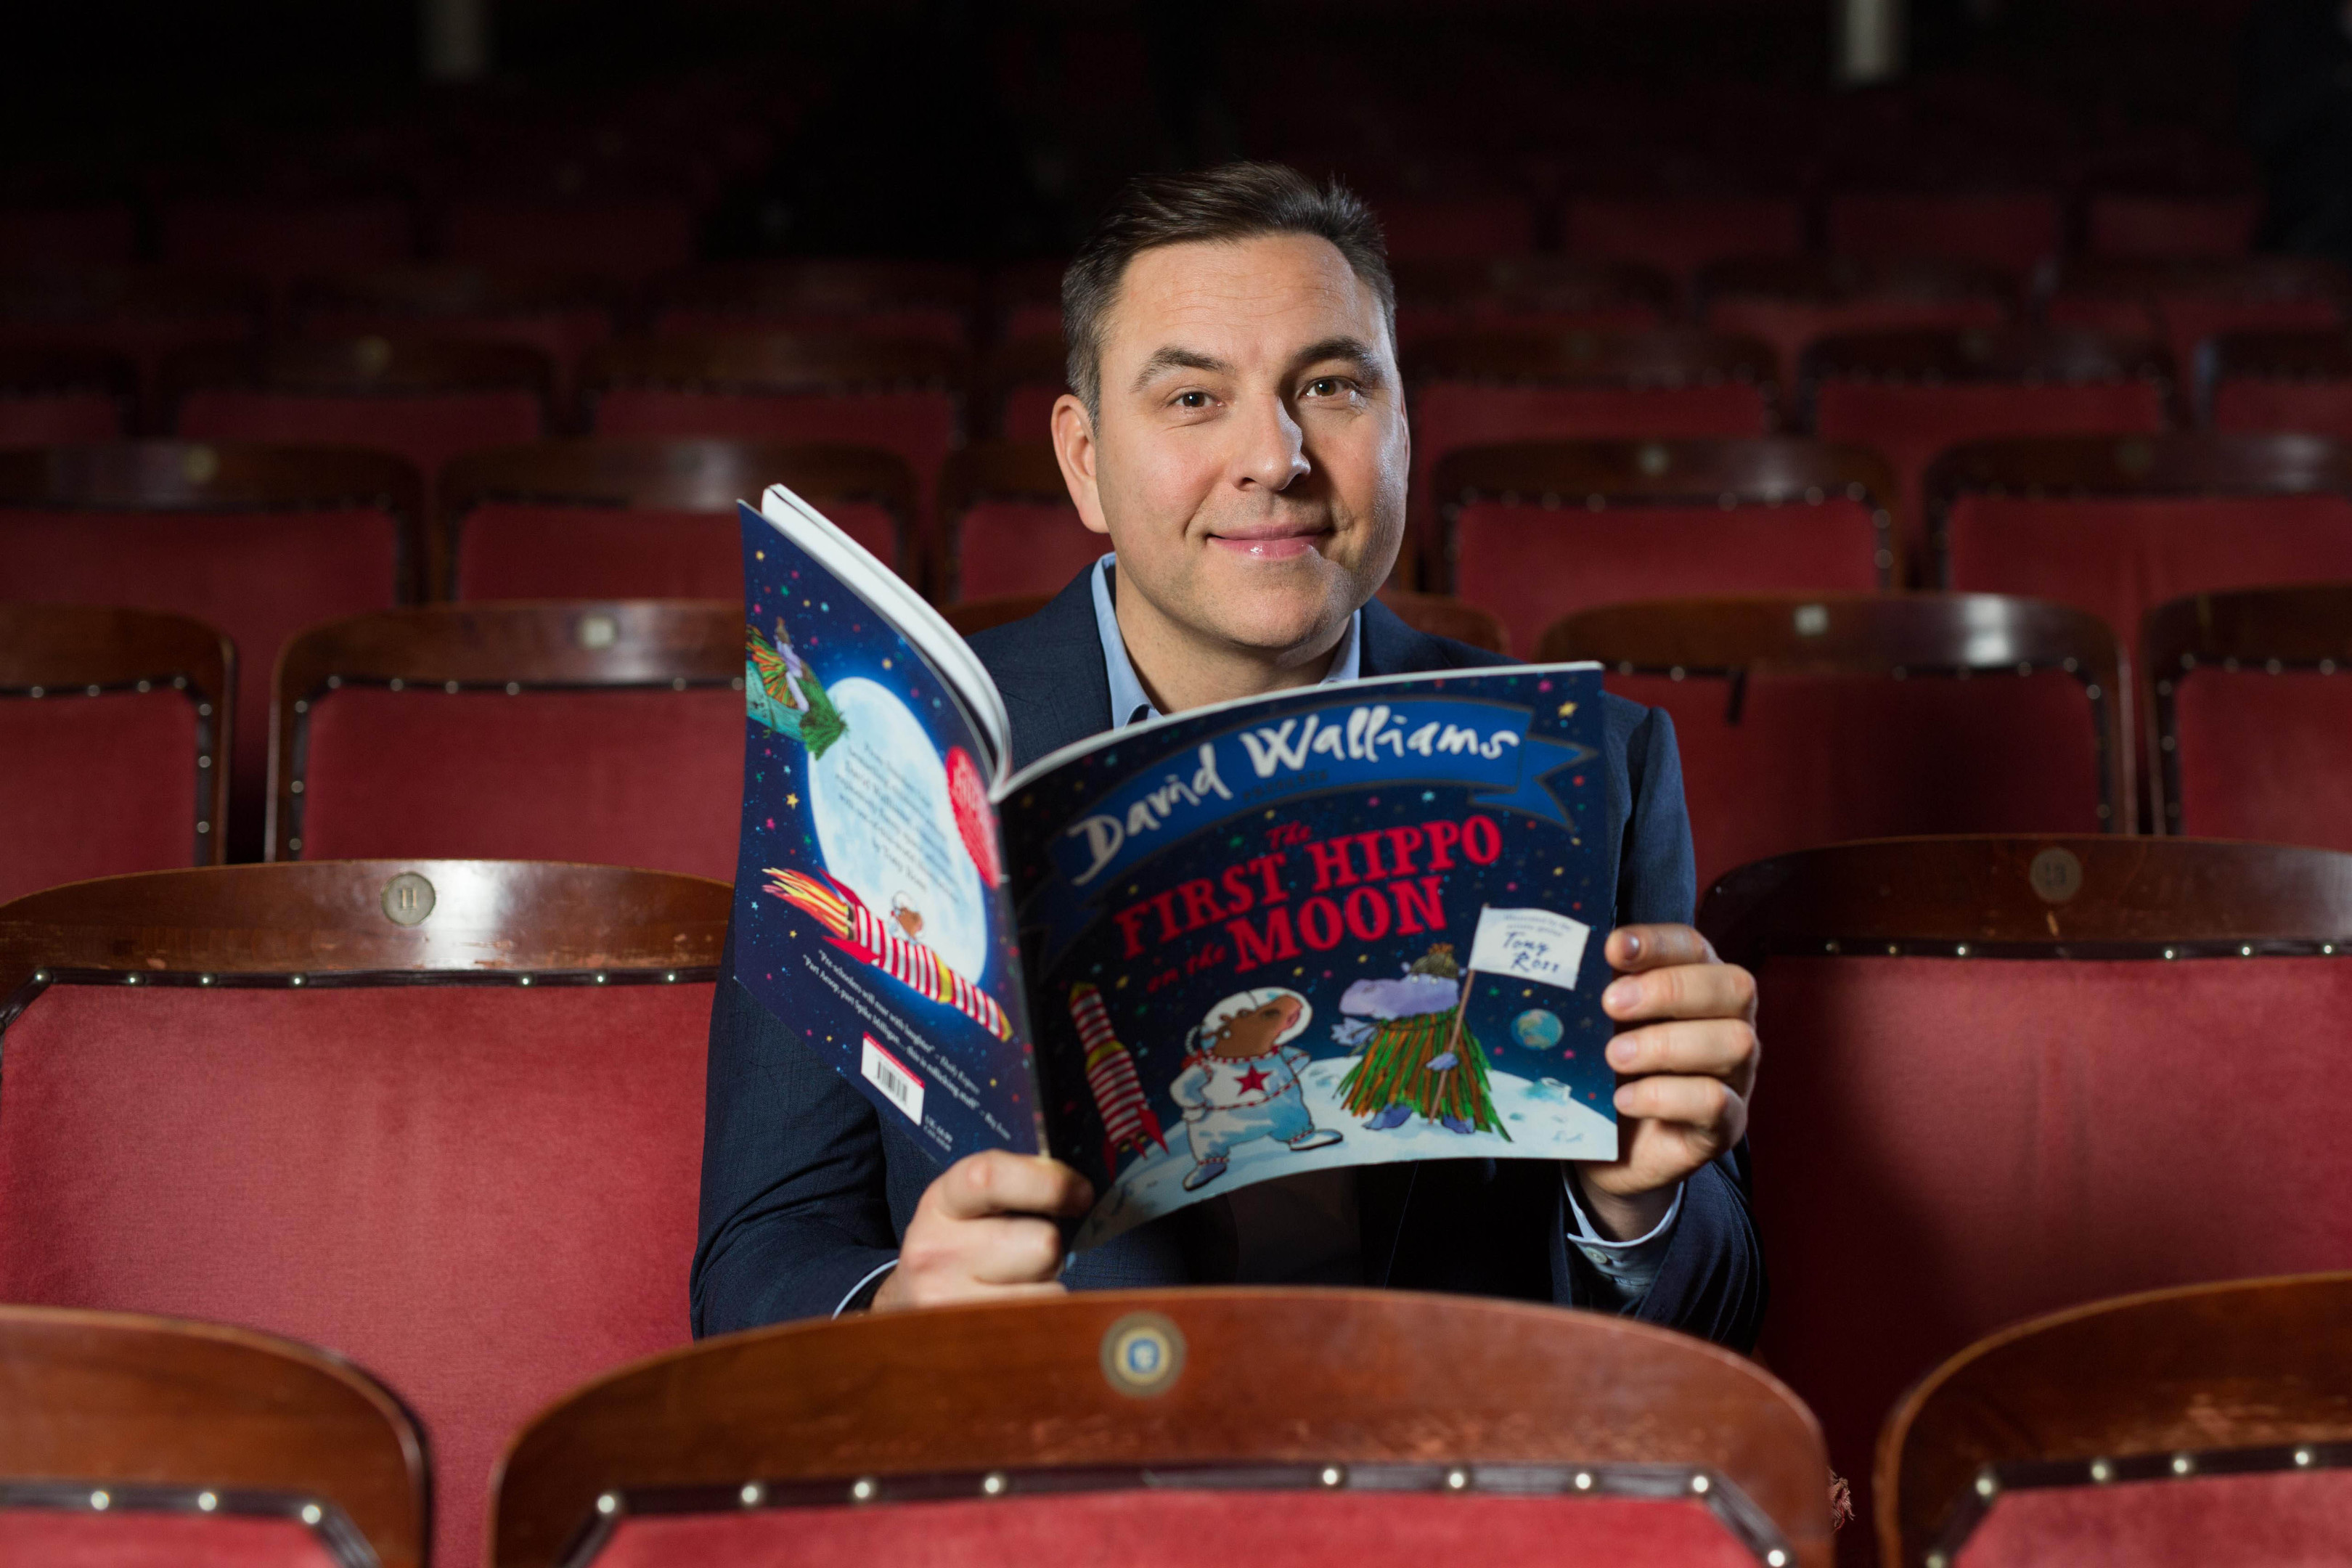 David Walliams' book The First Hippo on the Moon has been adapted for stage (PA Images)